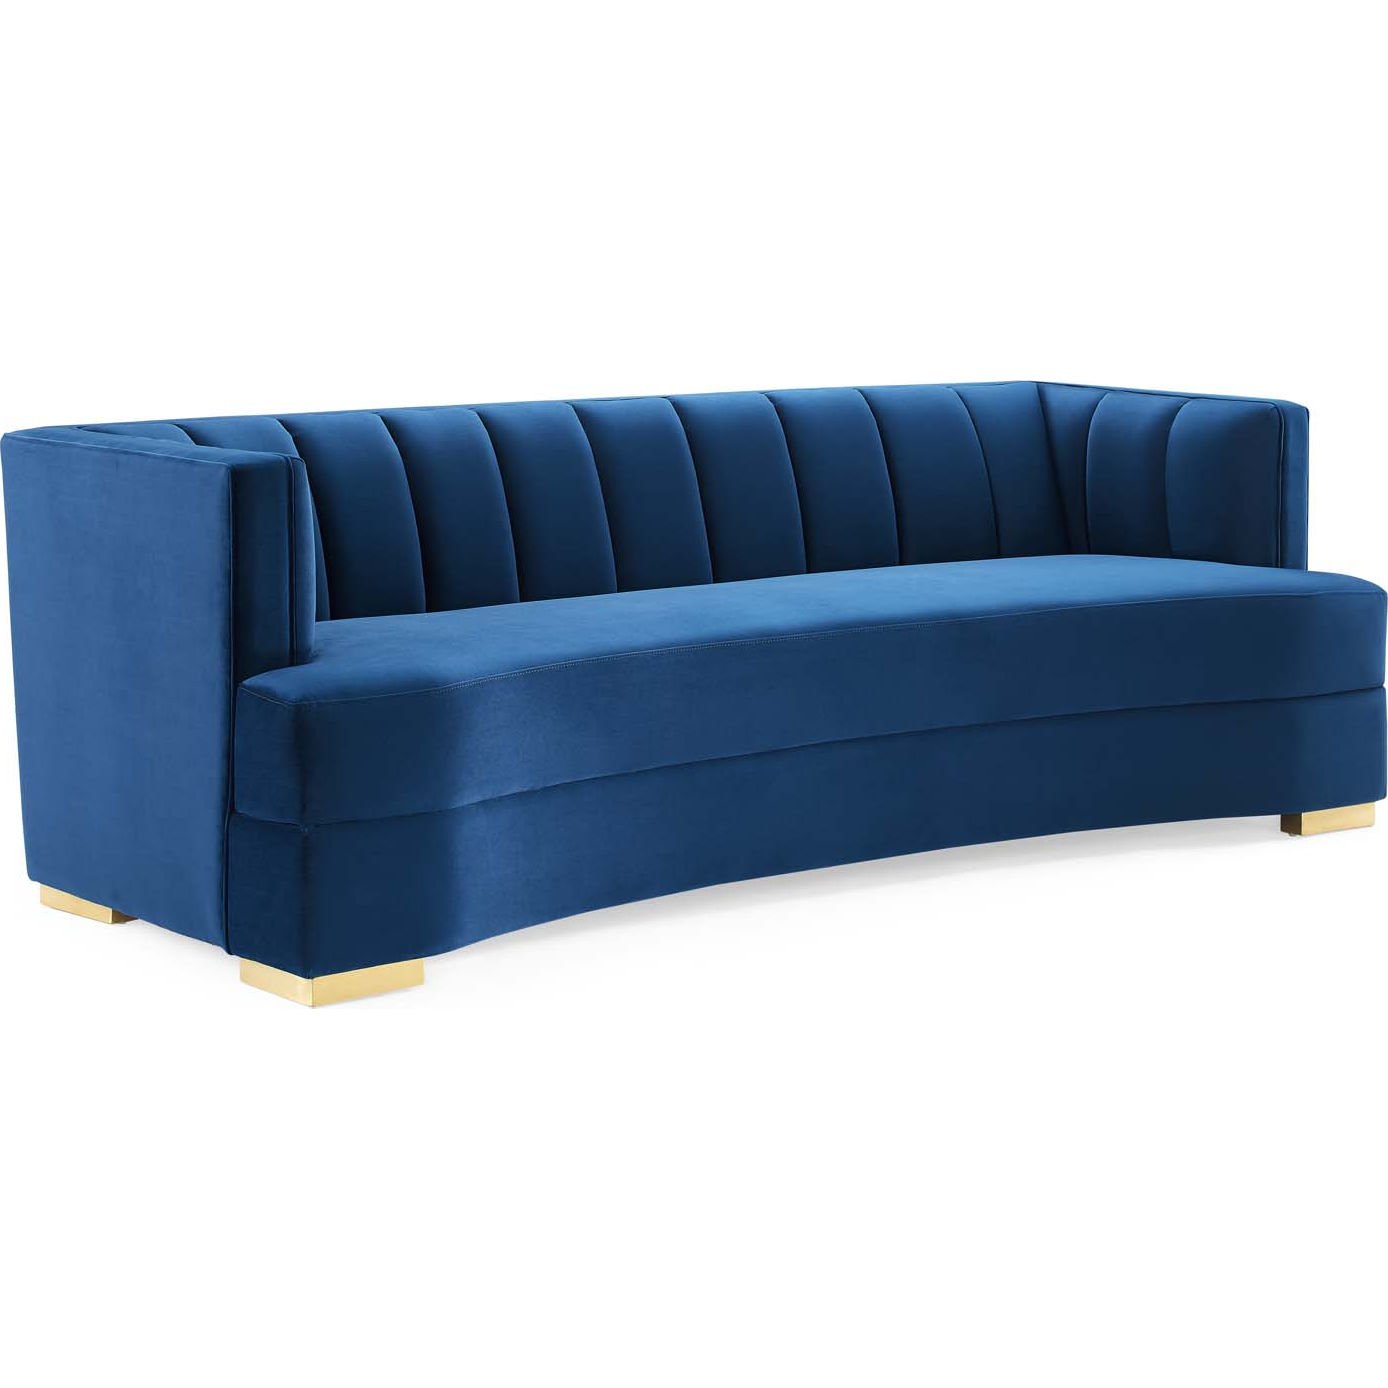 Modway Eei 4134 Nav Encompass Curved Sofa In Channel Tufted Navy Blue Velvet Gold